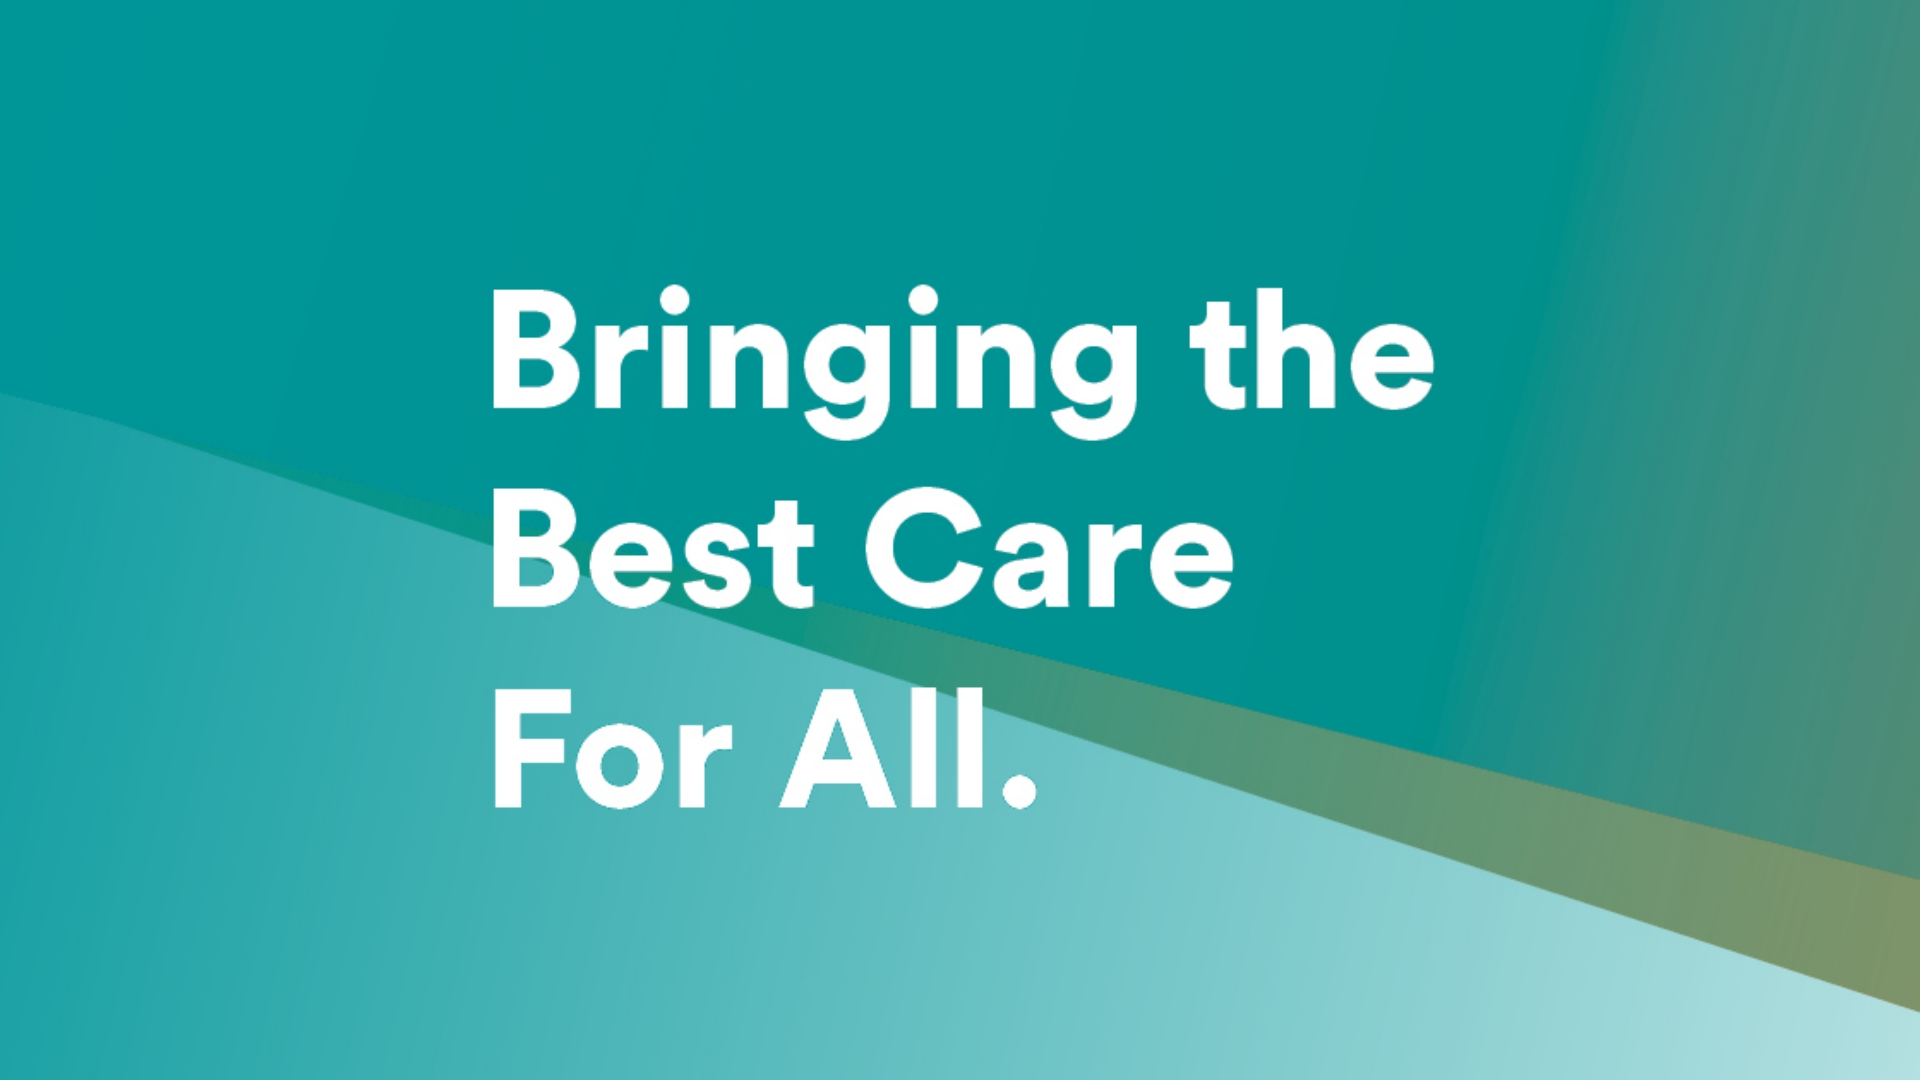 Atrium Health and Wake Forest Partner to Provide the Best Care for All